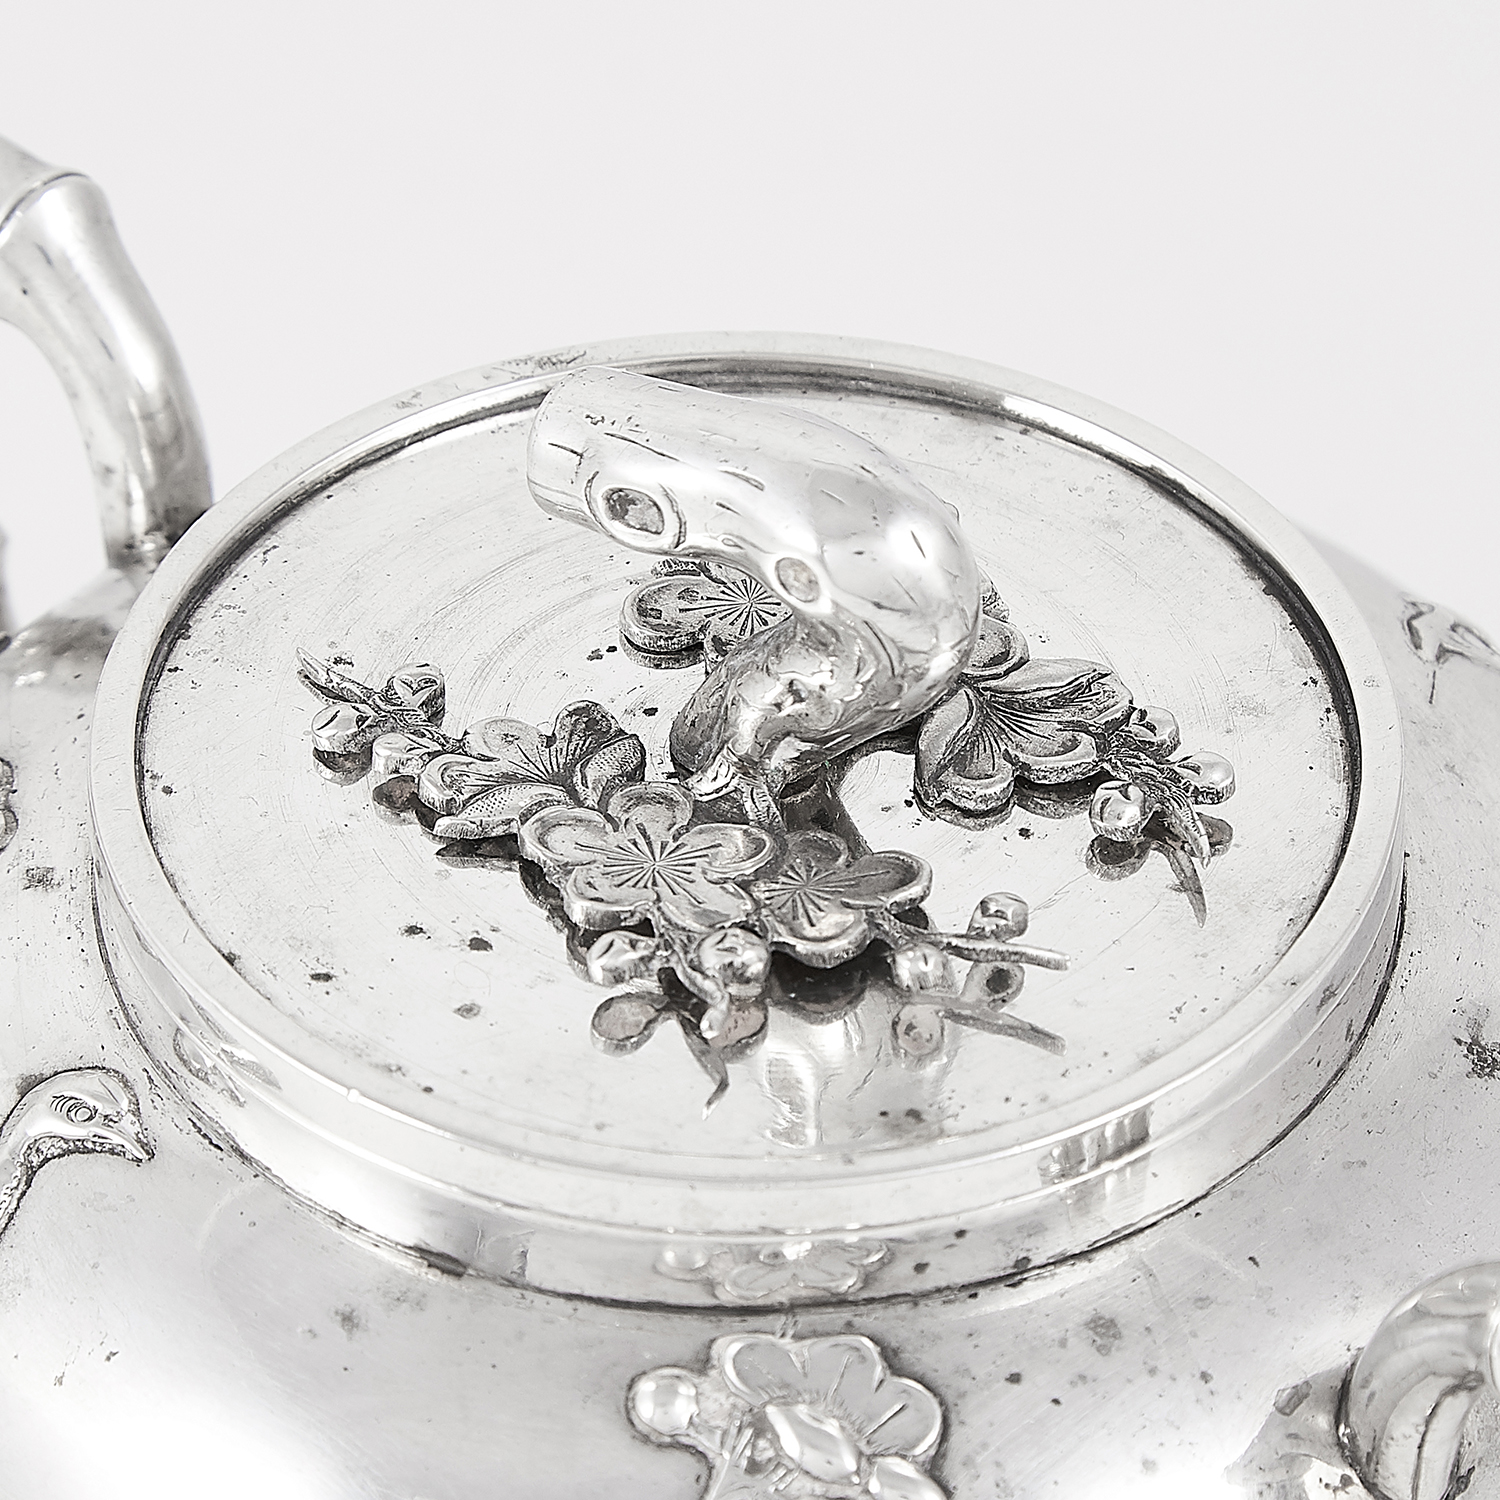 ANTIQUE CHINESE EXPORT SILVER TEAPOT AND SUGAR BOWL, HUNG CHONG CIRCA 1900 the rounded bodies with - Image 6 of 6